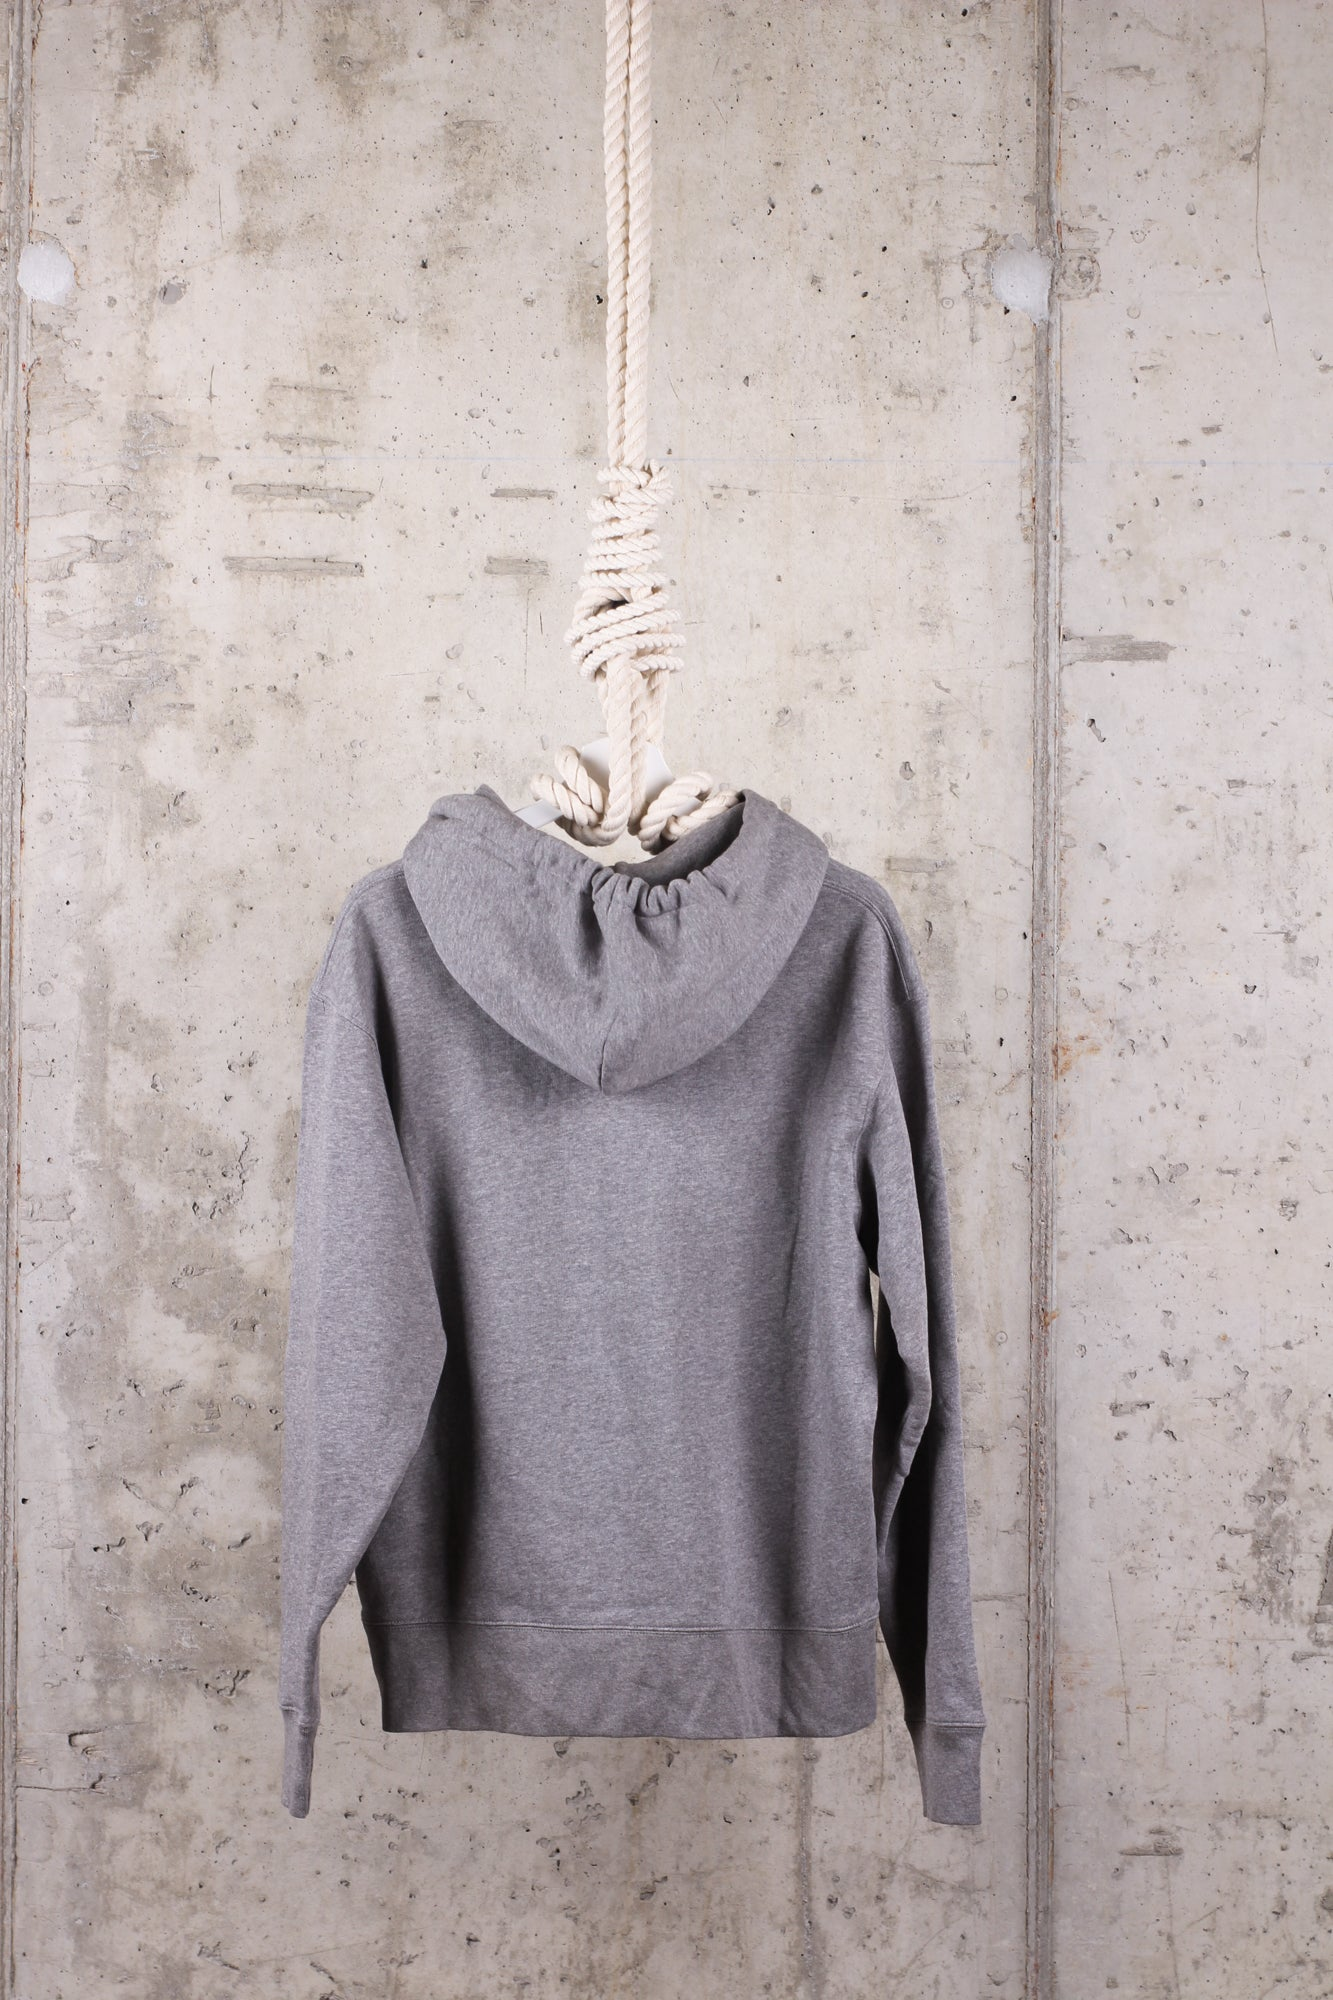 ACNE Studios Ferris face Oversized Cotton Hoodie - Size Large